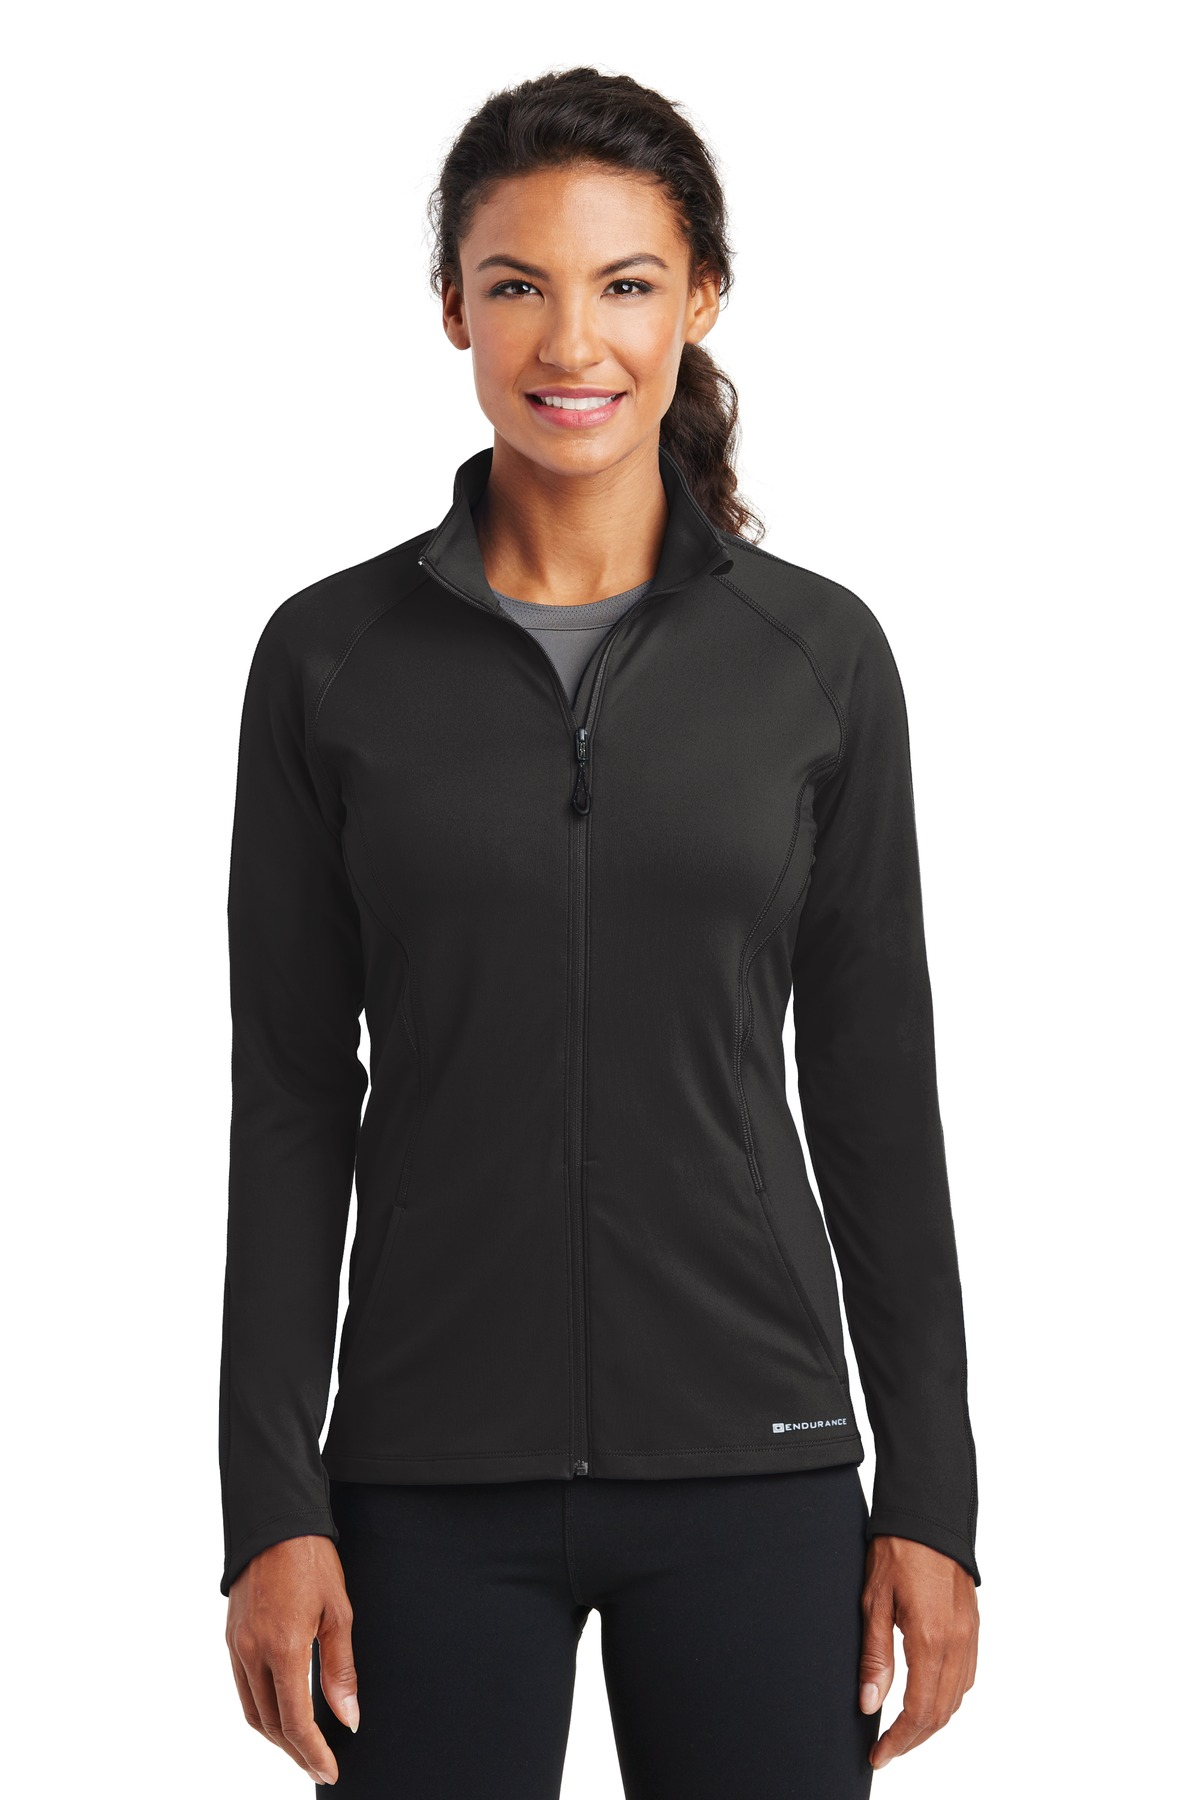 OGIO ®  ENDURANCE Ladies Radius Full-Zip. LOE551 - Blacktop